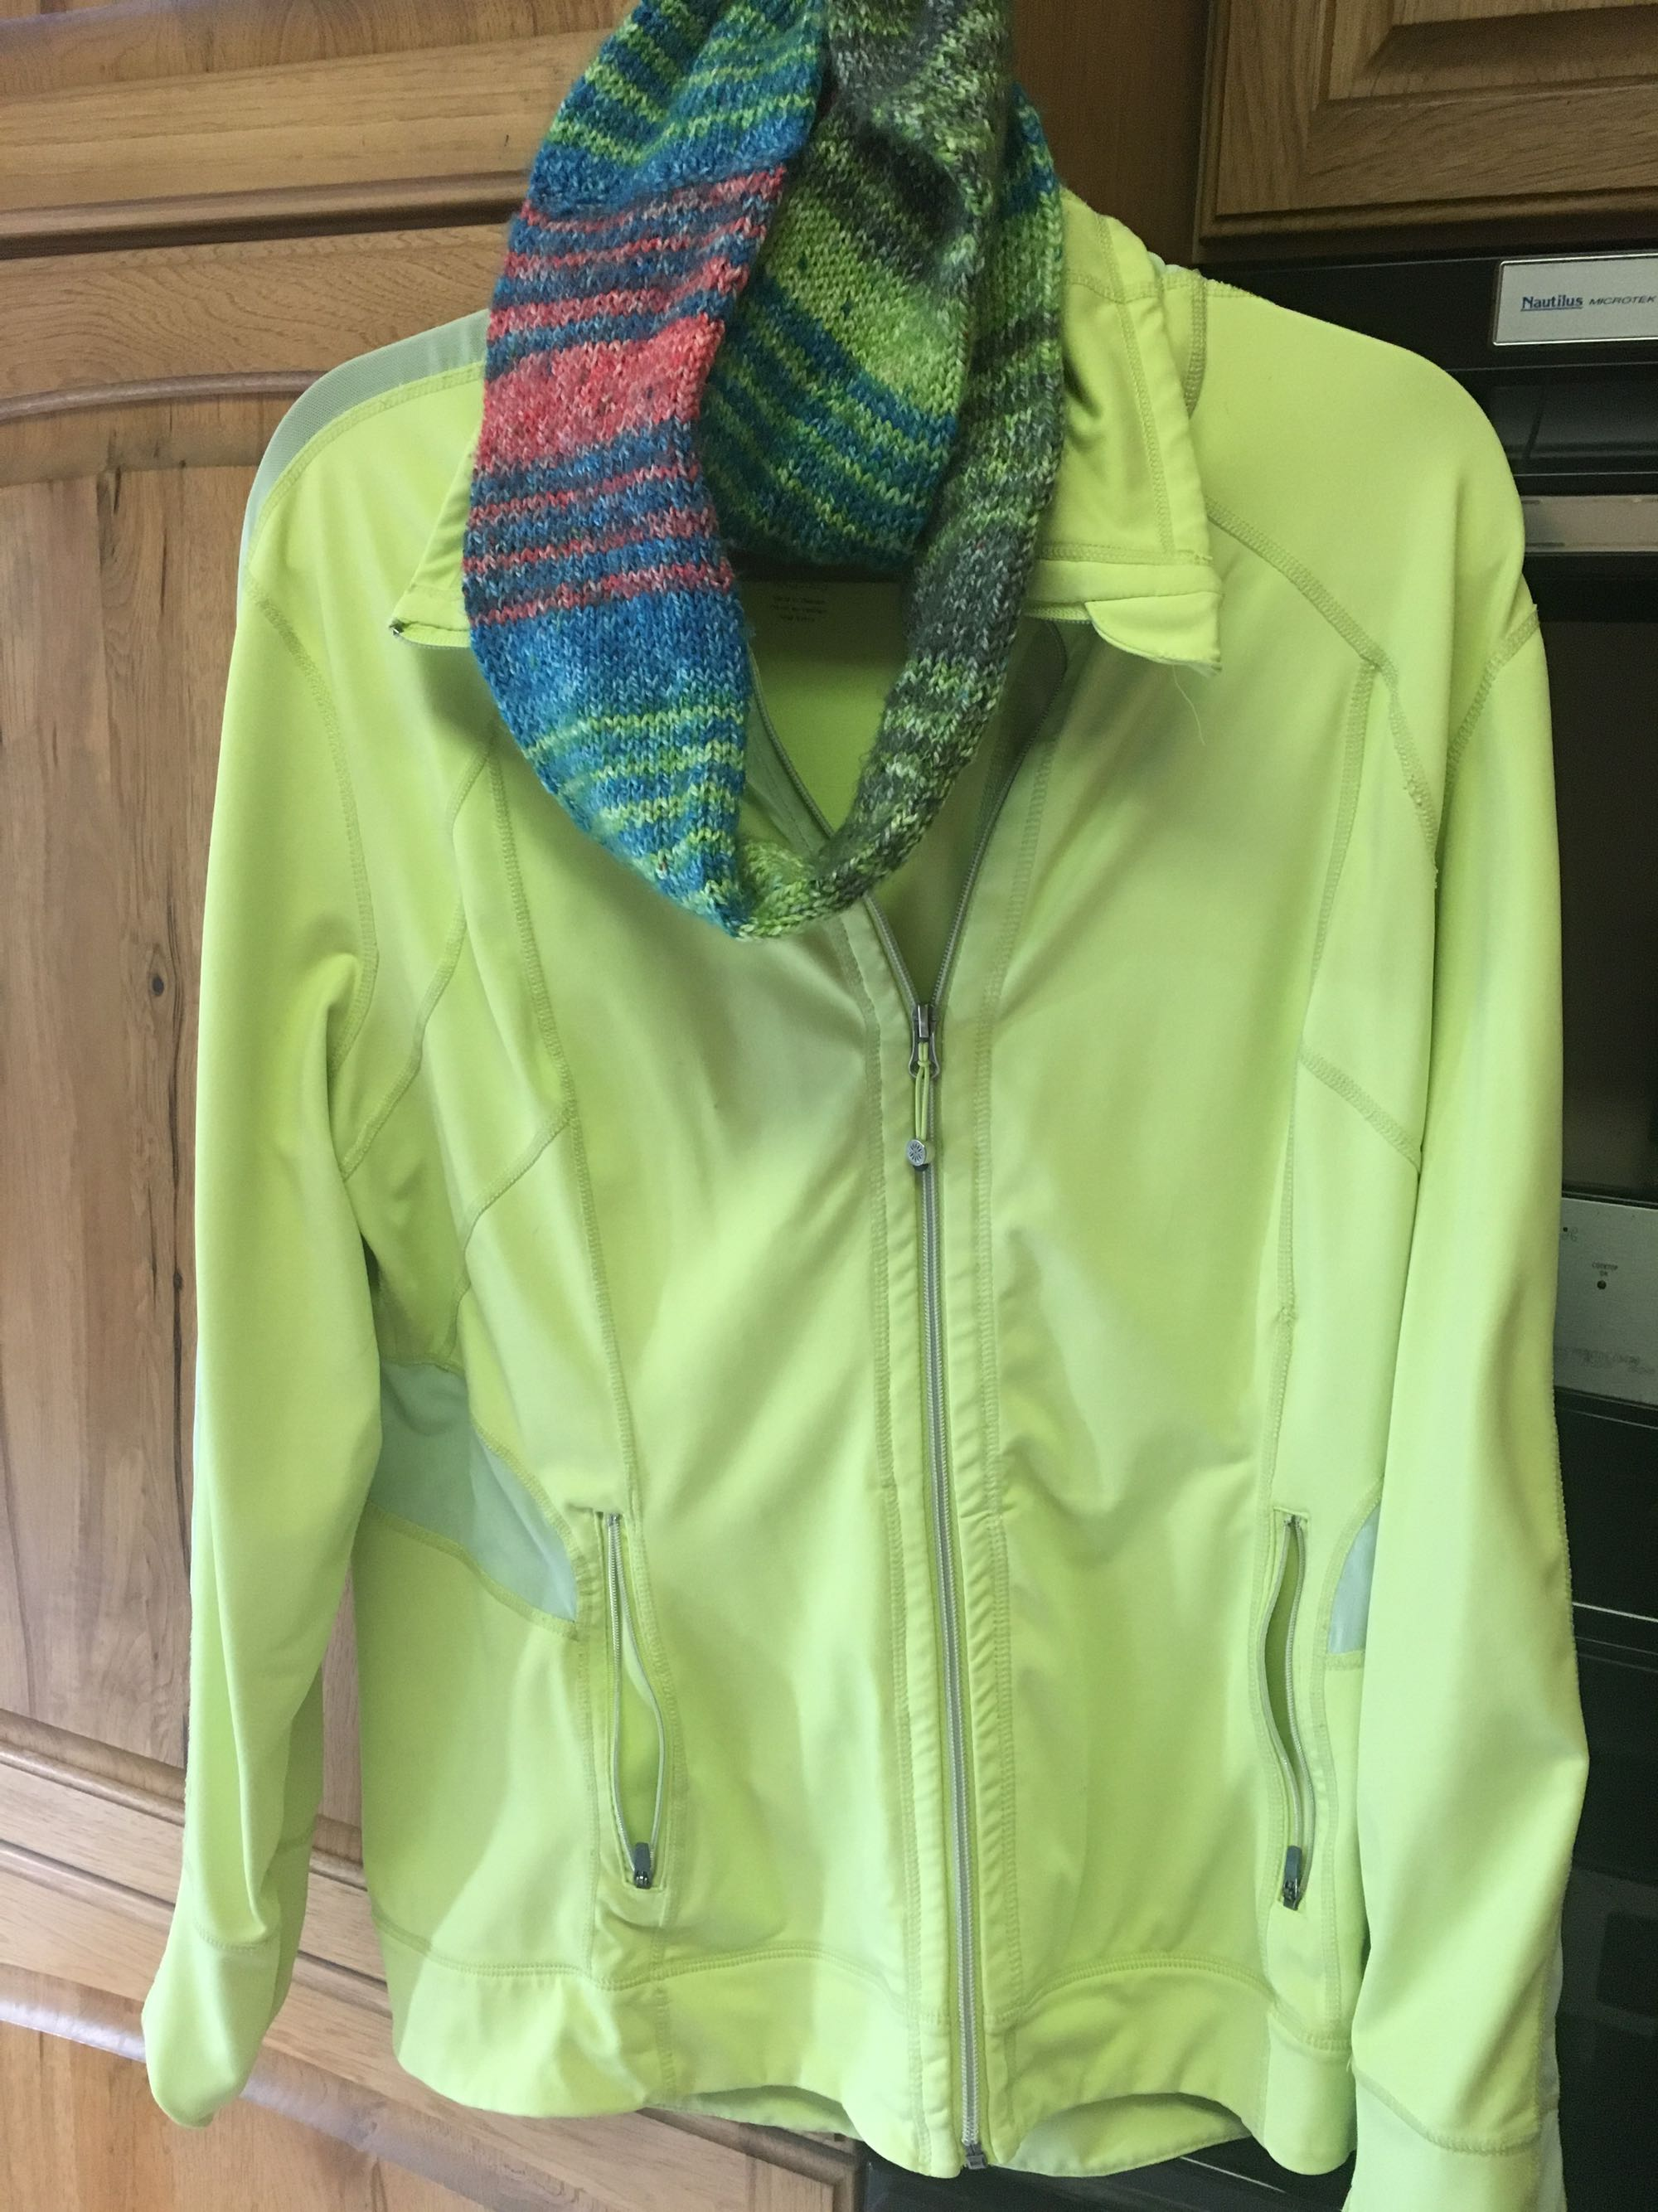 Lime green Tangerine stretchy zip up w/ thin holes no holes or stain X XL w/ infinity scarf